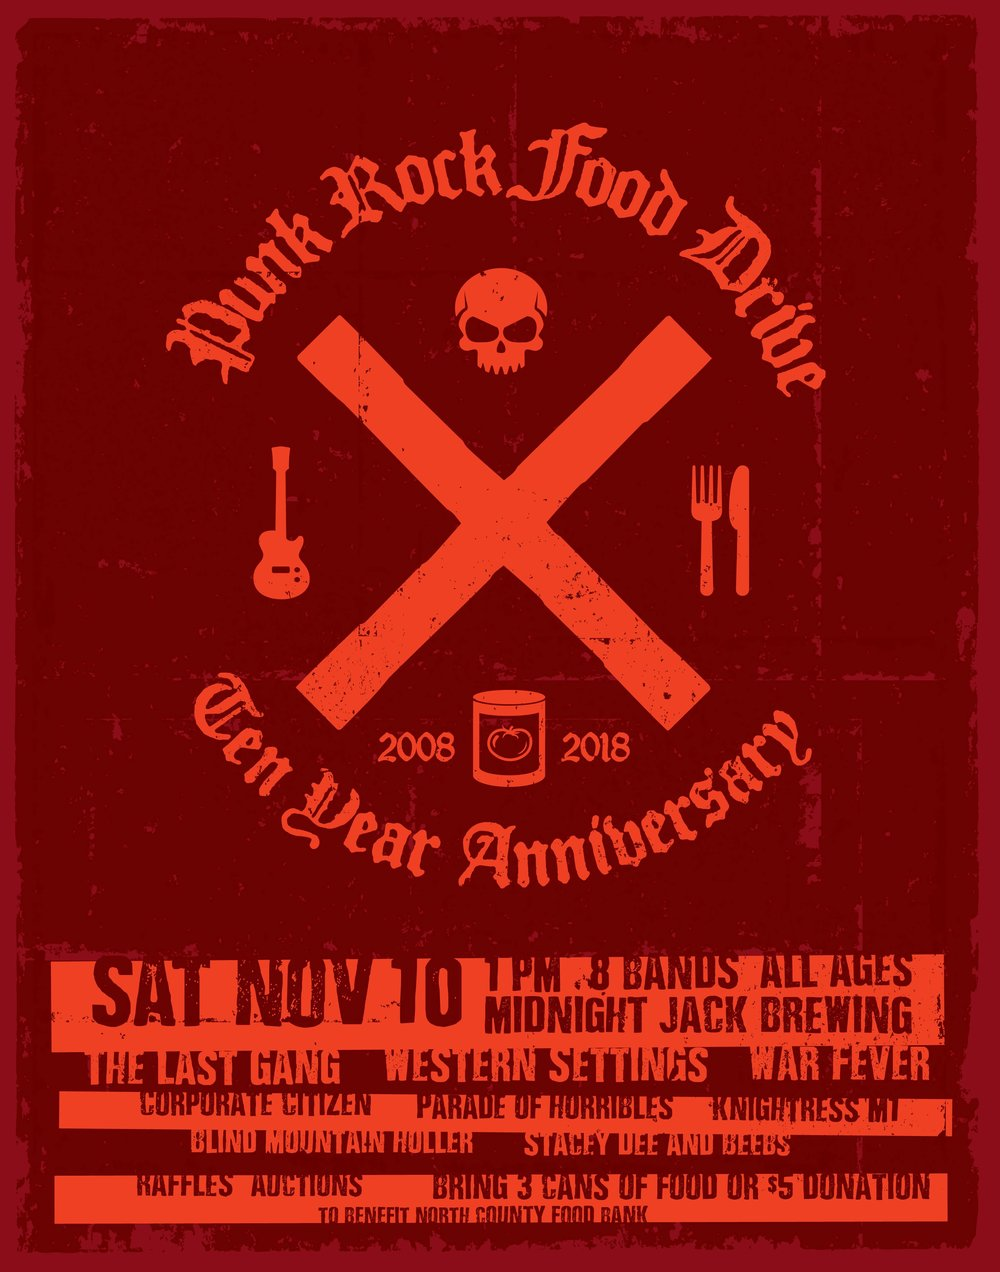 The 10th Annual Thanksgiving Punk Rock Food Drive - DATE: 11/10/2018VENUE: Midnight Jack Brewing Co. Oceanside, CARESULTS:1,763 pounds of food$4,753.00.24,234 meals.LINEUP:The Last GangWestern SettingsWar FeverCorporate CitizenParade of HorriblesKnightressM1Blind Mountain HollerStacey Dee & BeebsALL PHOTOS BY JOEL GELIN